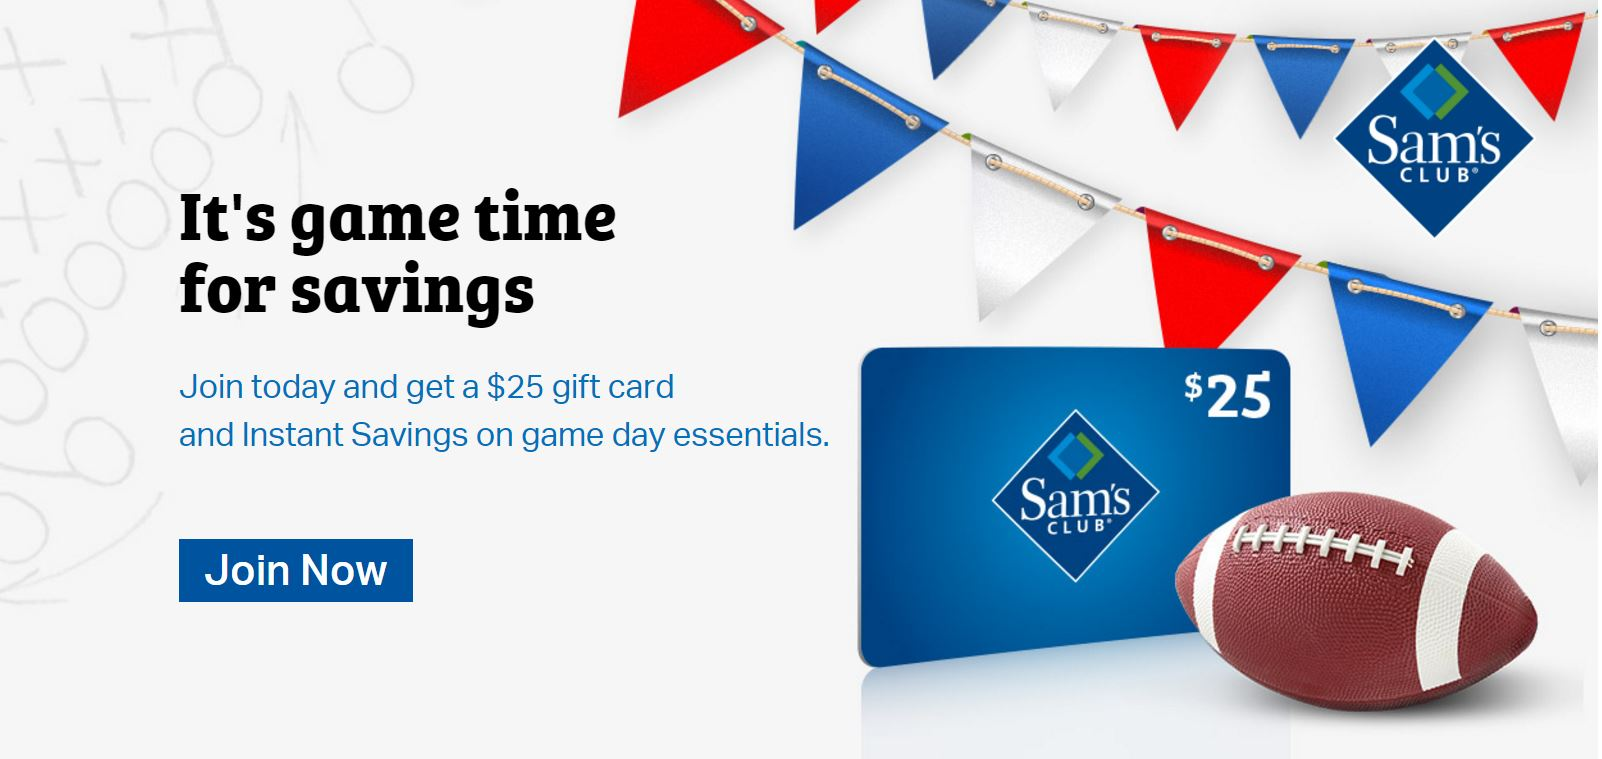 sams-club-january-offer